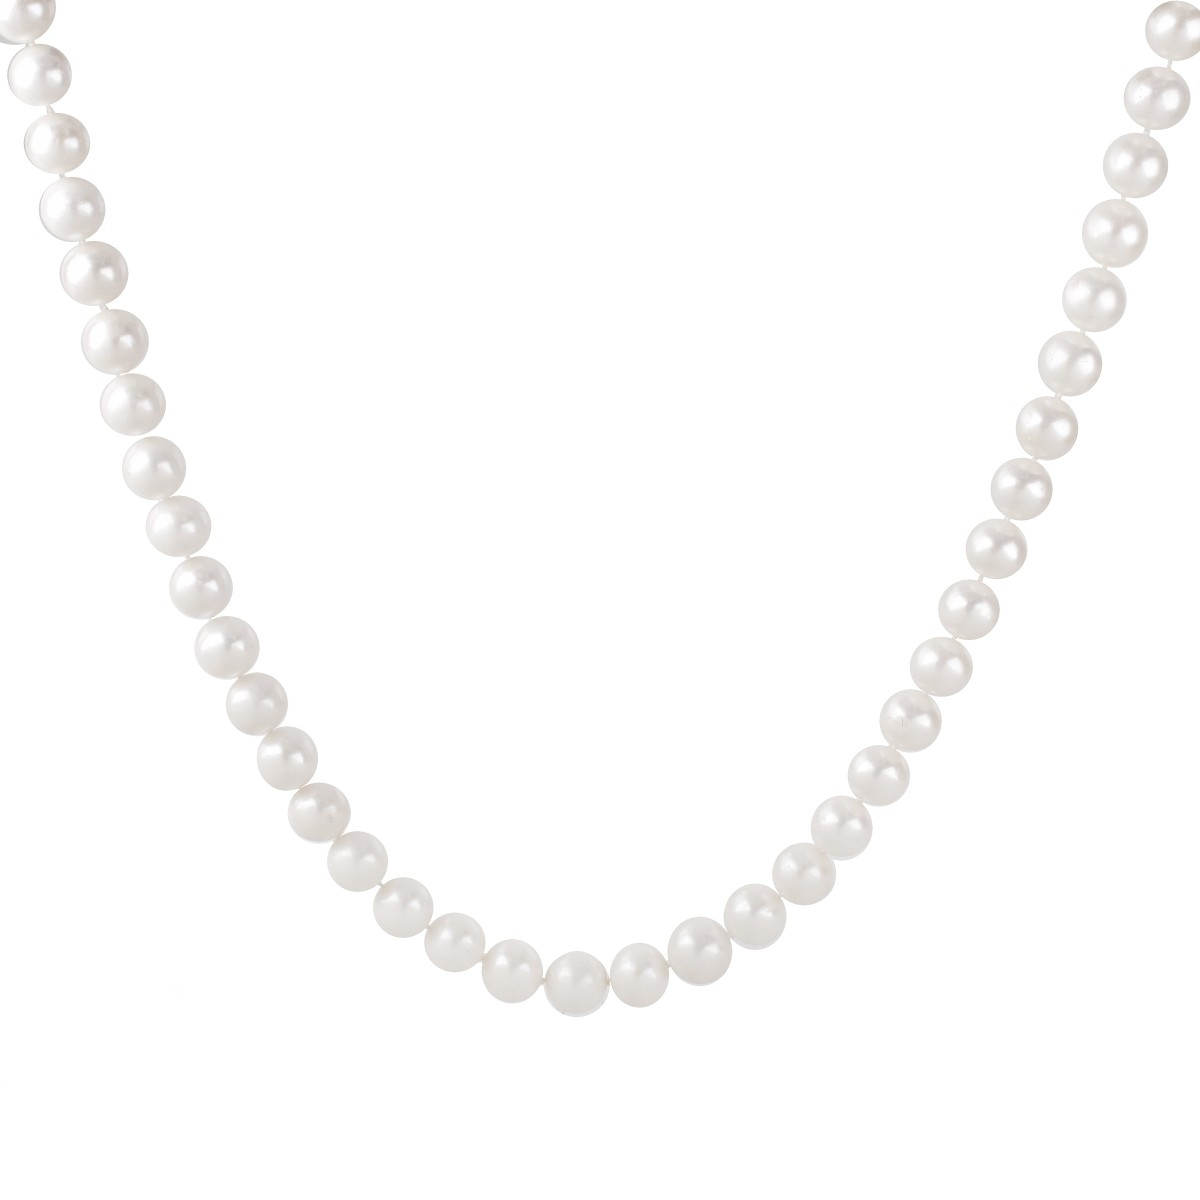 11.0-14.0mm South Sea Pearl Necklace